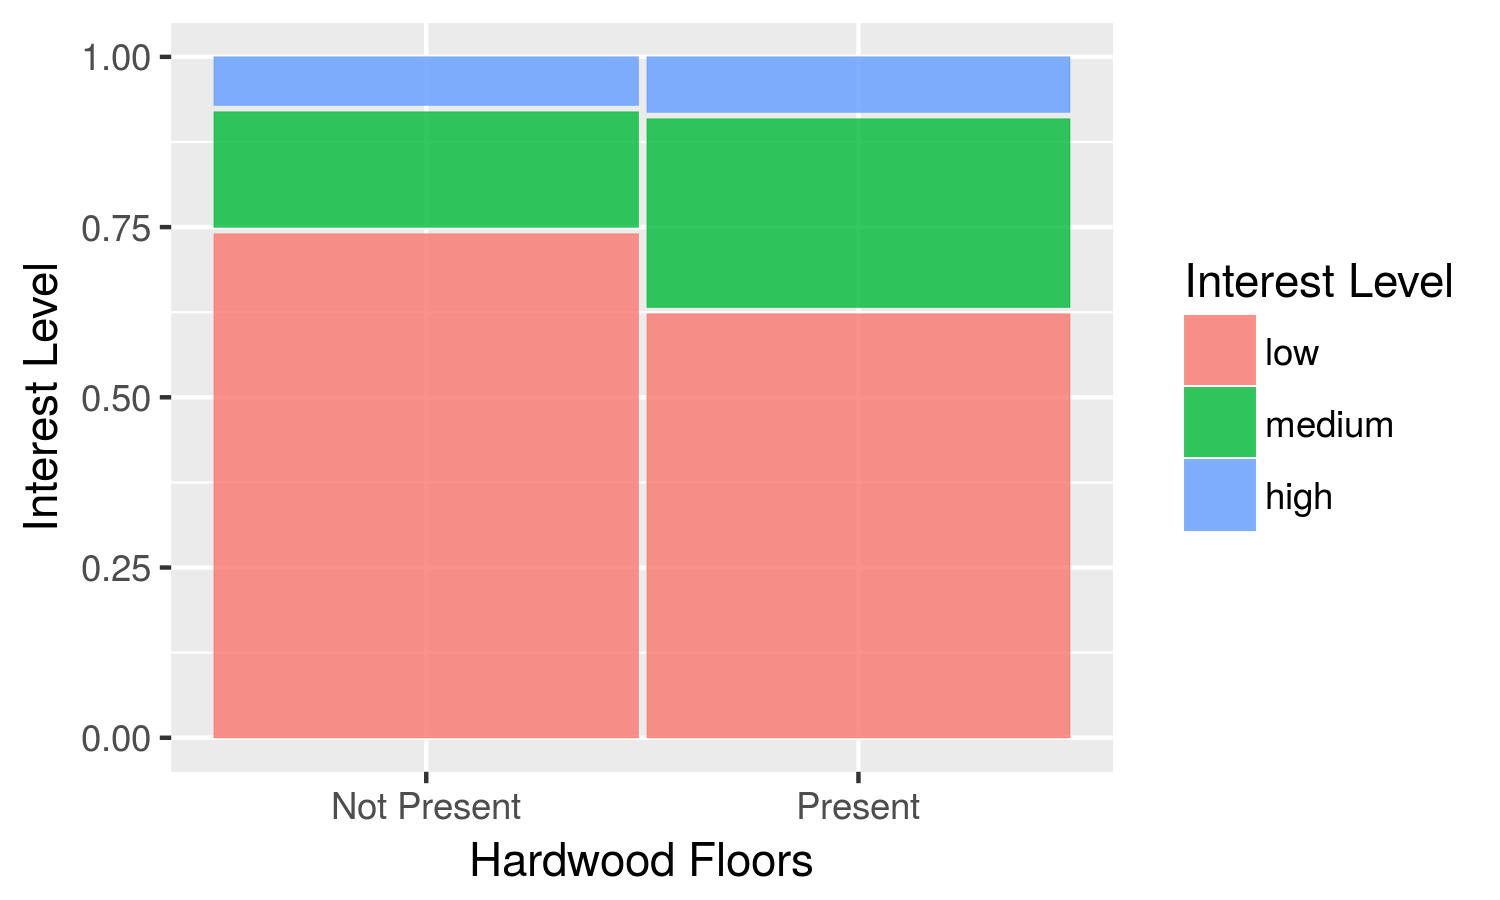 Distribution of interest levels with respect to hardwood floors